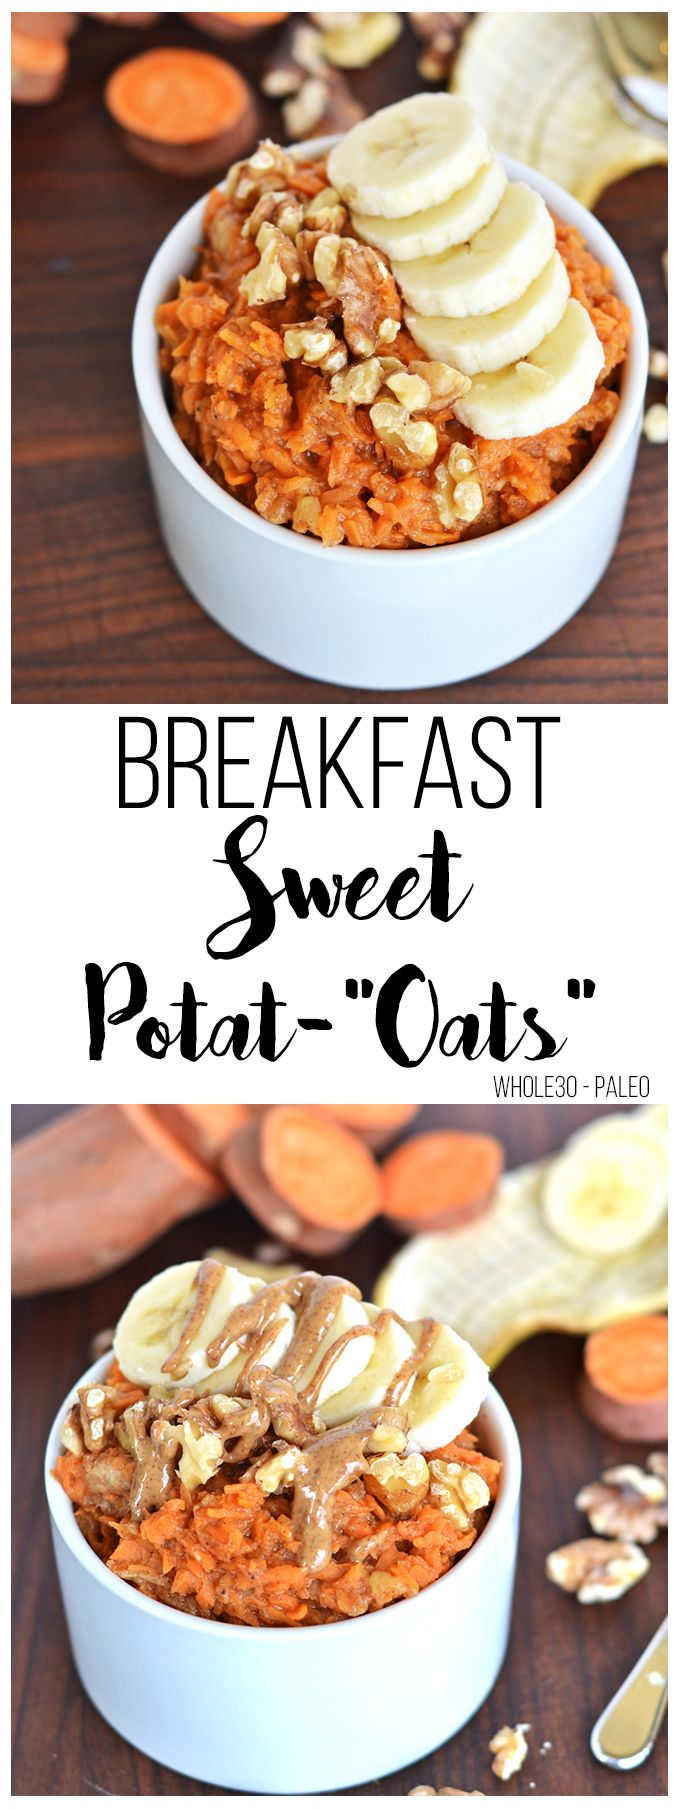 Need A Grain Free Breakfast Option That Isn't Eggs? These Breakfast Sweet  Potat